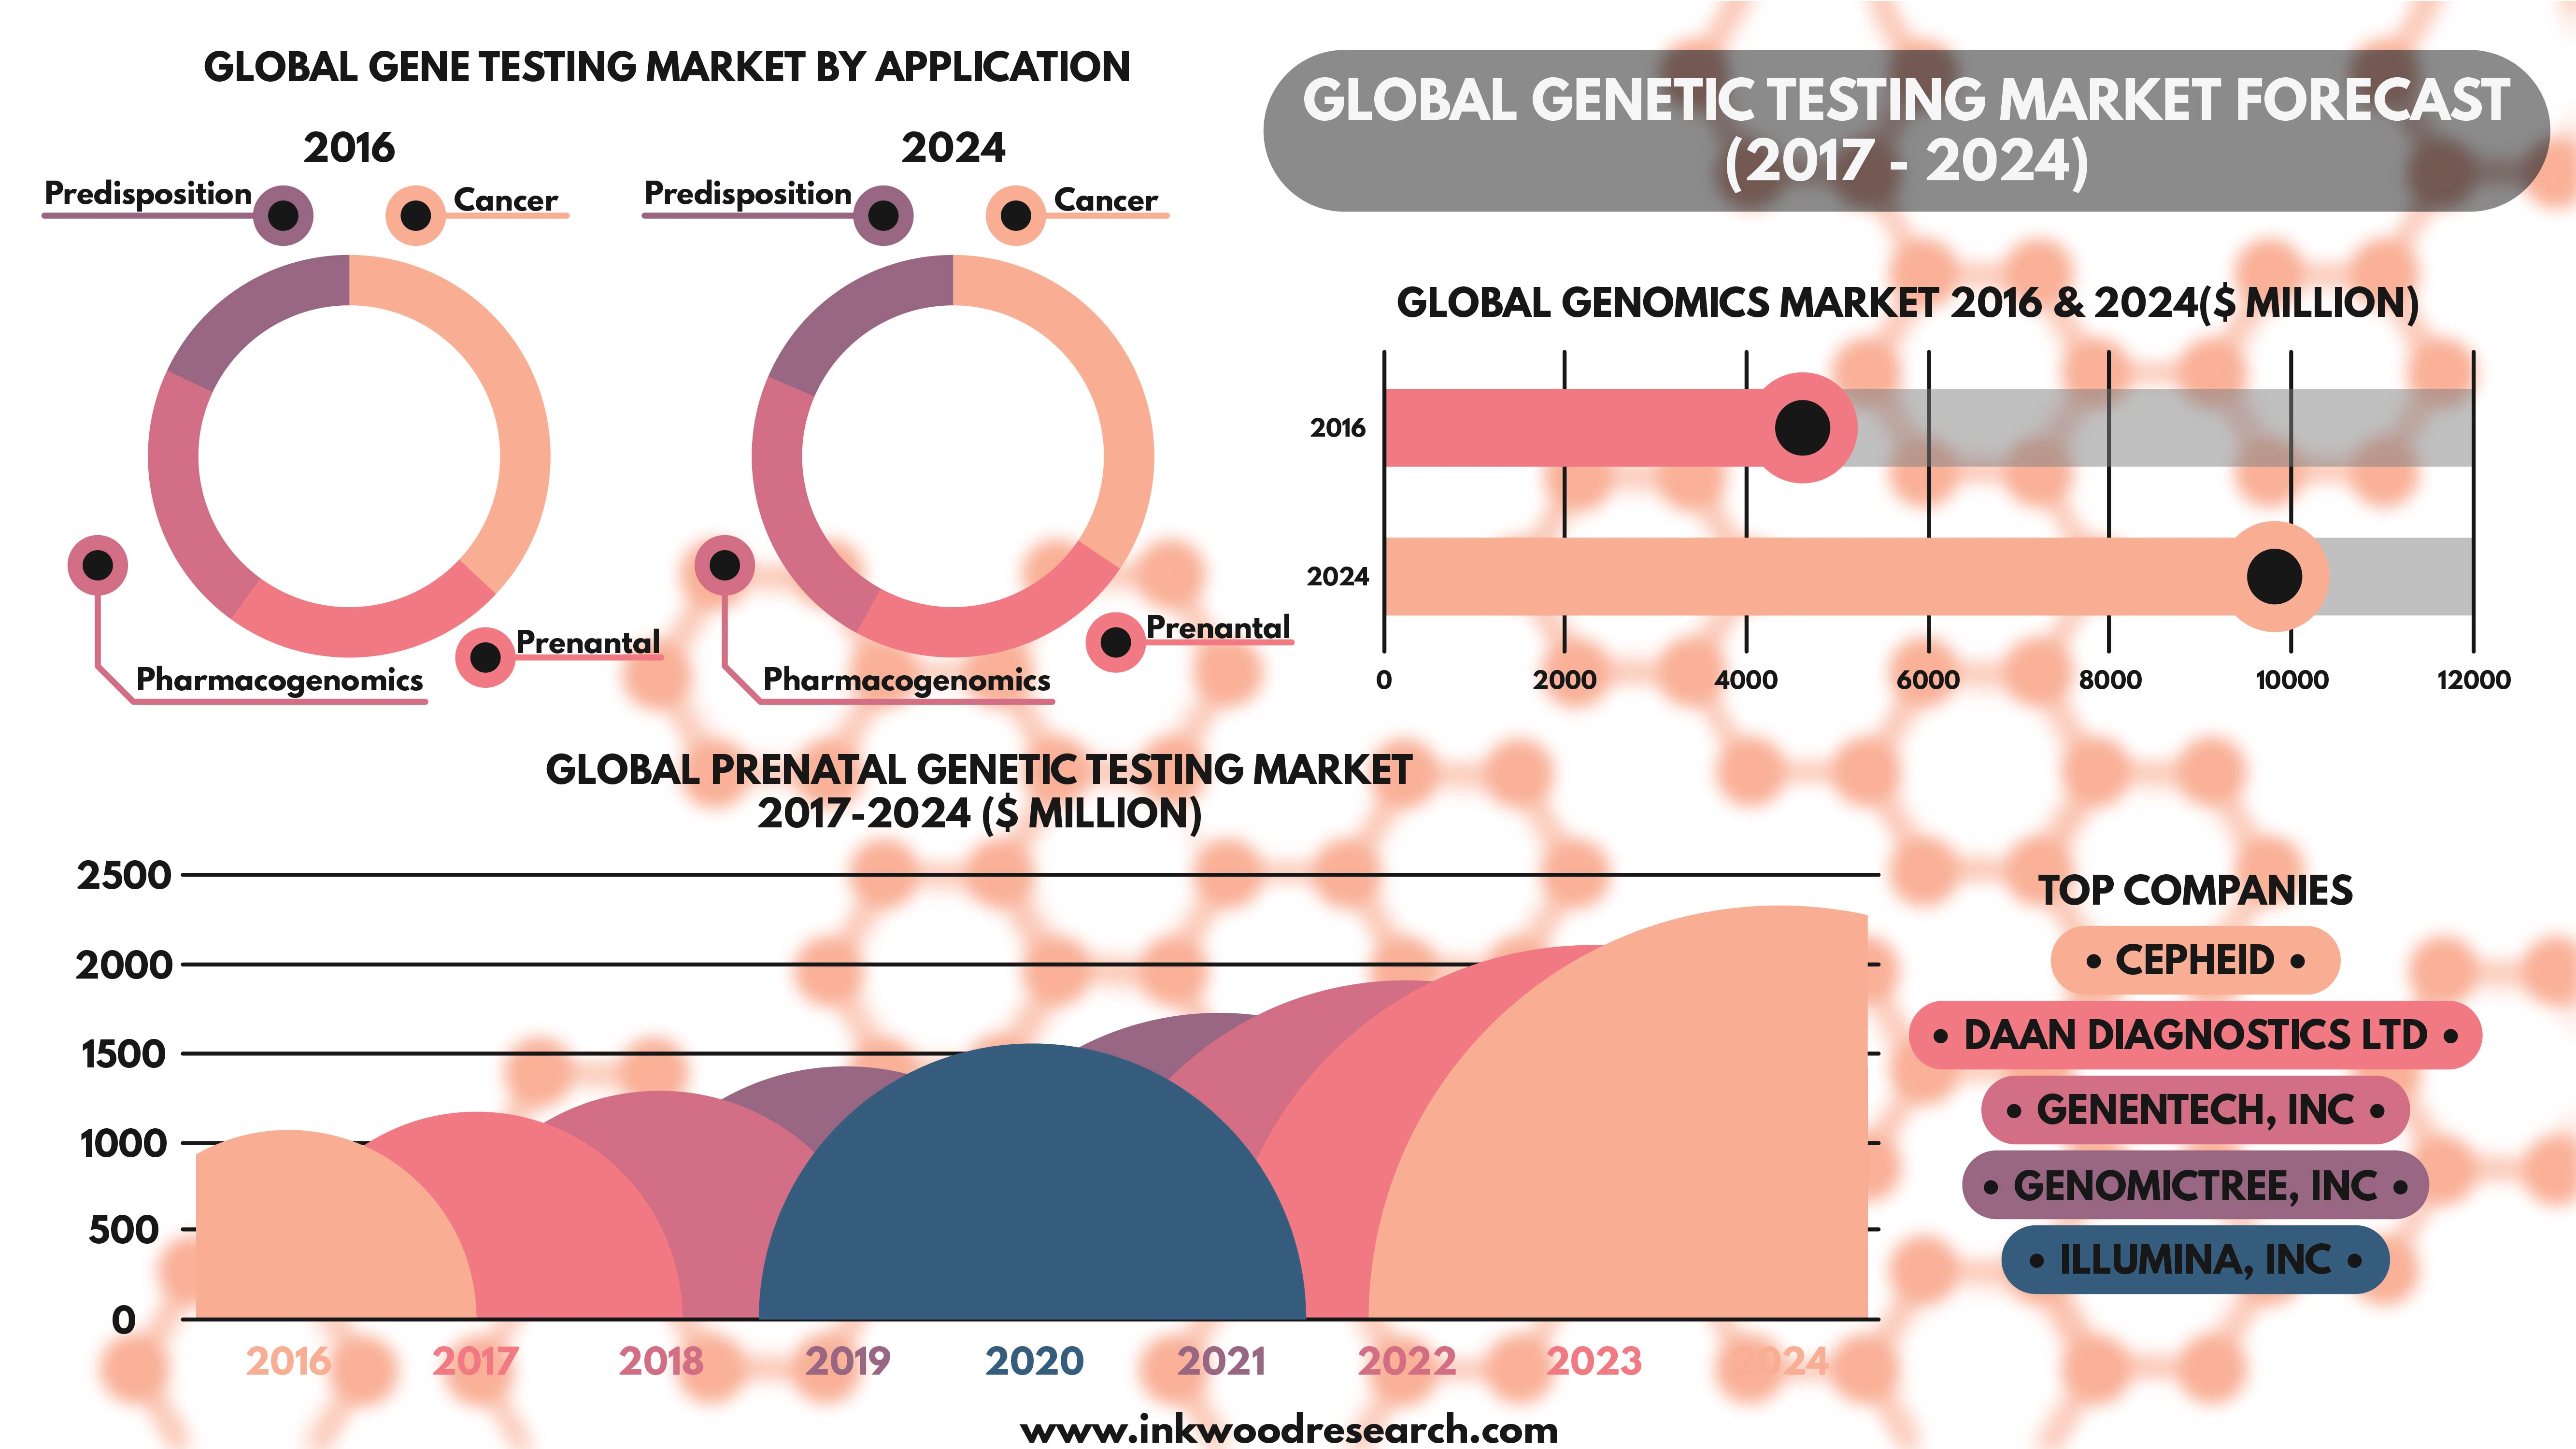 genetic paper research testing The ethical dilemmas of genetic testing for huntington's disease by: edward • research paper • 3,525 words • february 15, 2010 • 488 views.